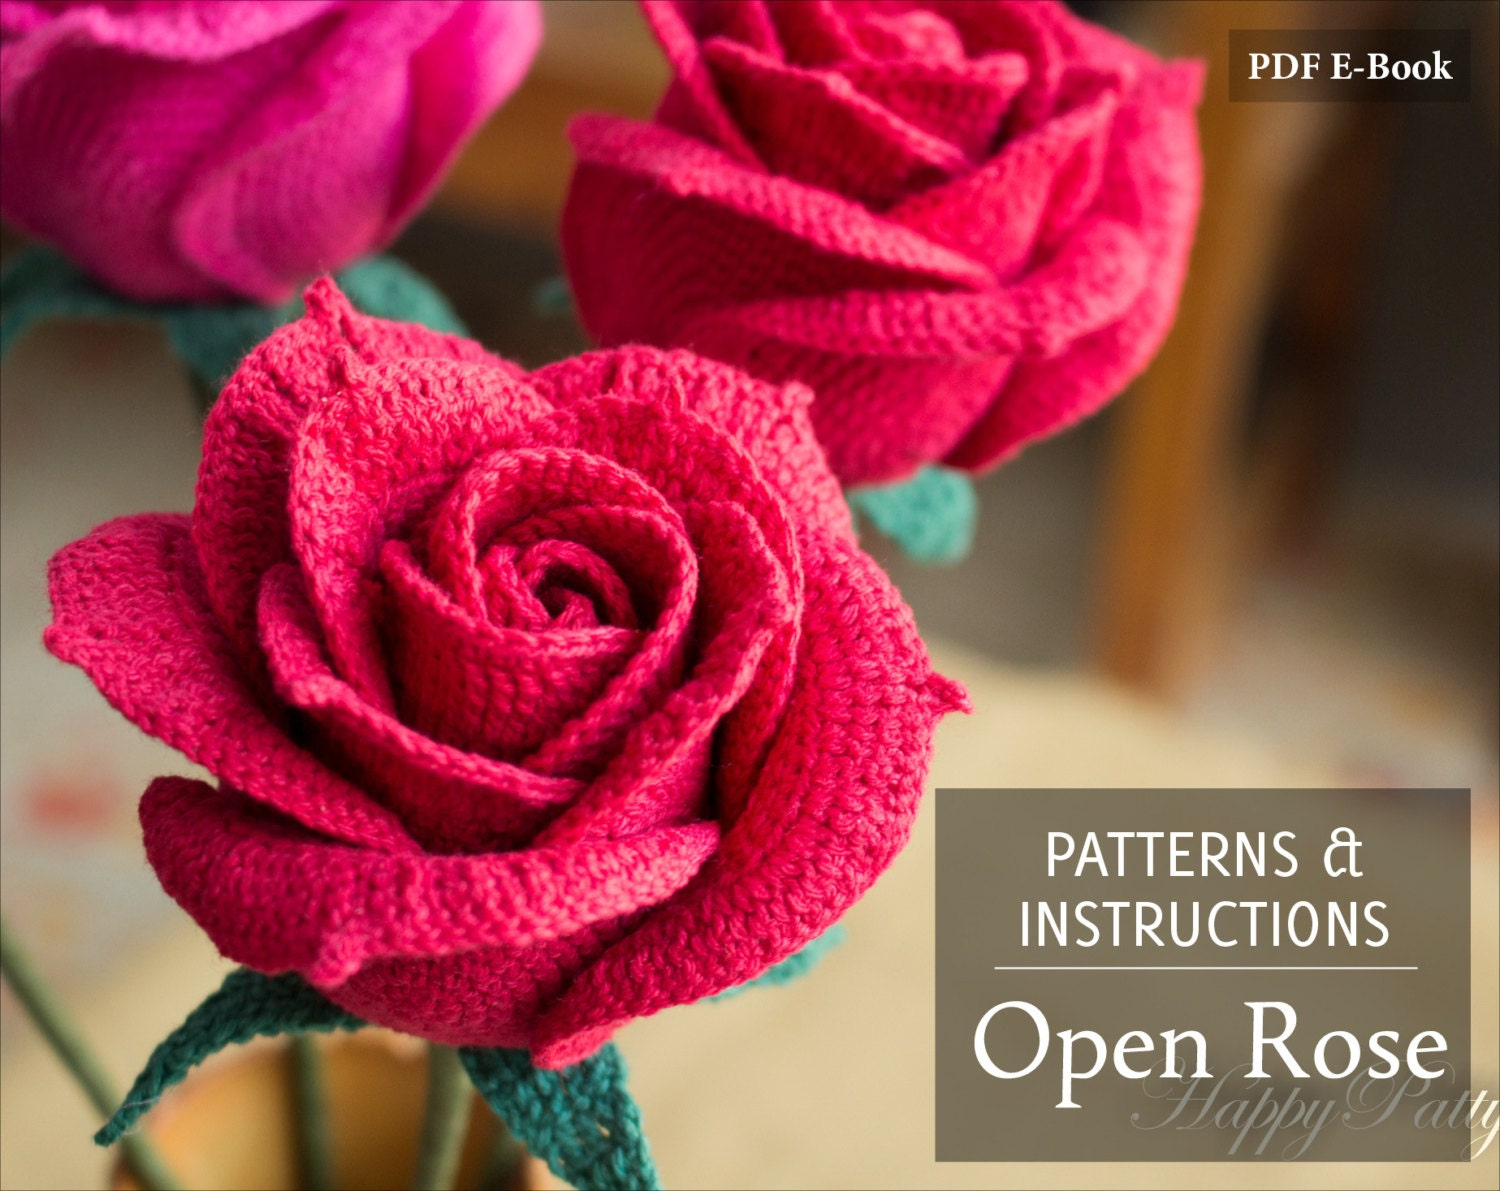 Crochet Patterns Roses Free : Crochet Rose Pattern Crochet Pattern for by HappyPattyCrochet